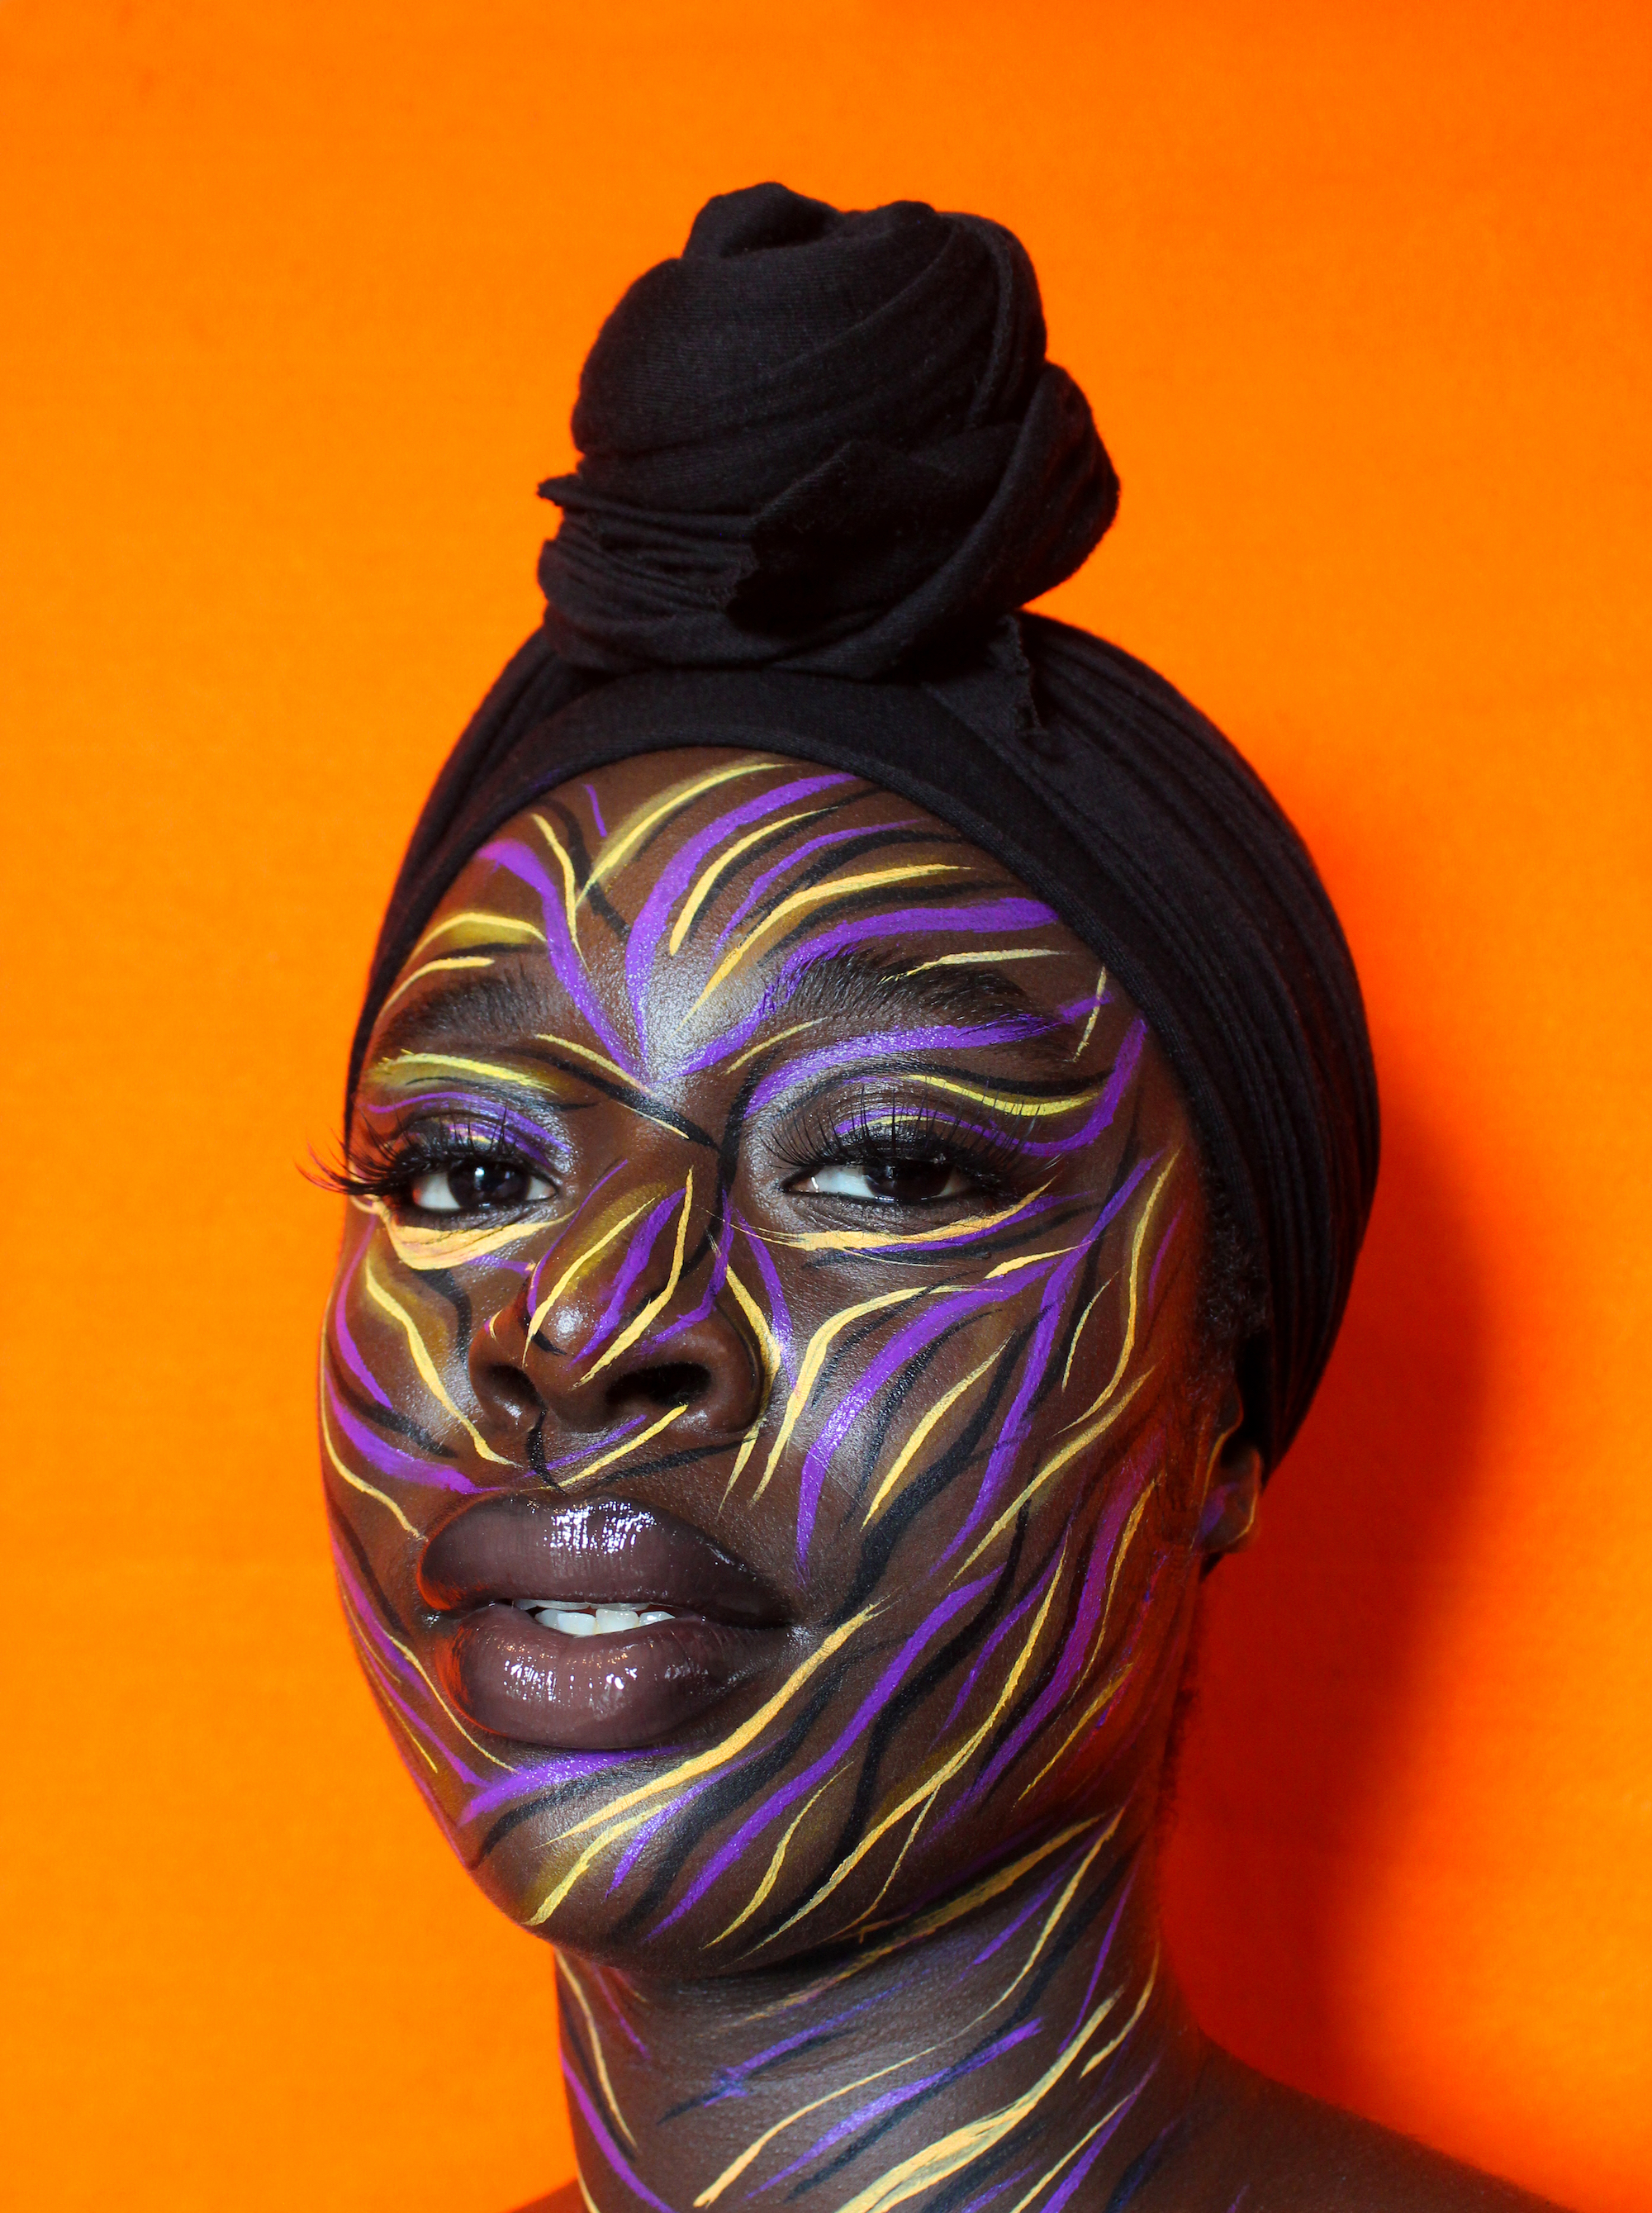 Illamasqua has teamed up with makeup artist Wendy's World for Pride - strokes